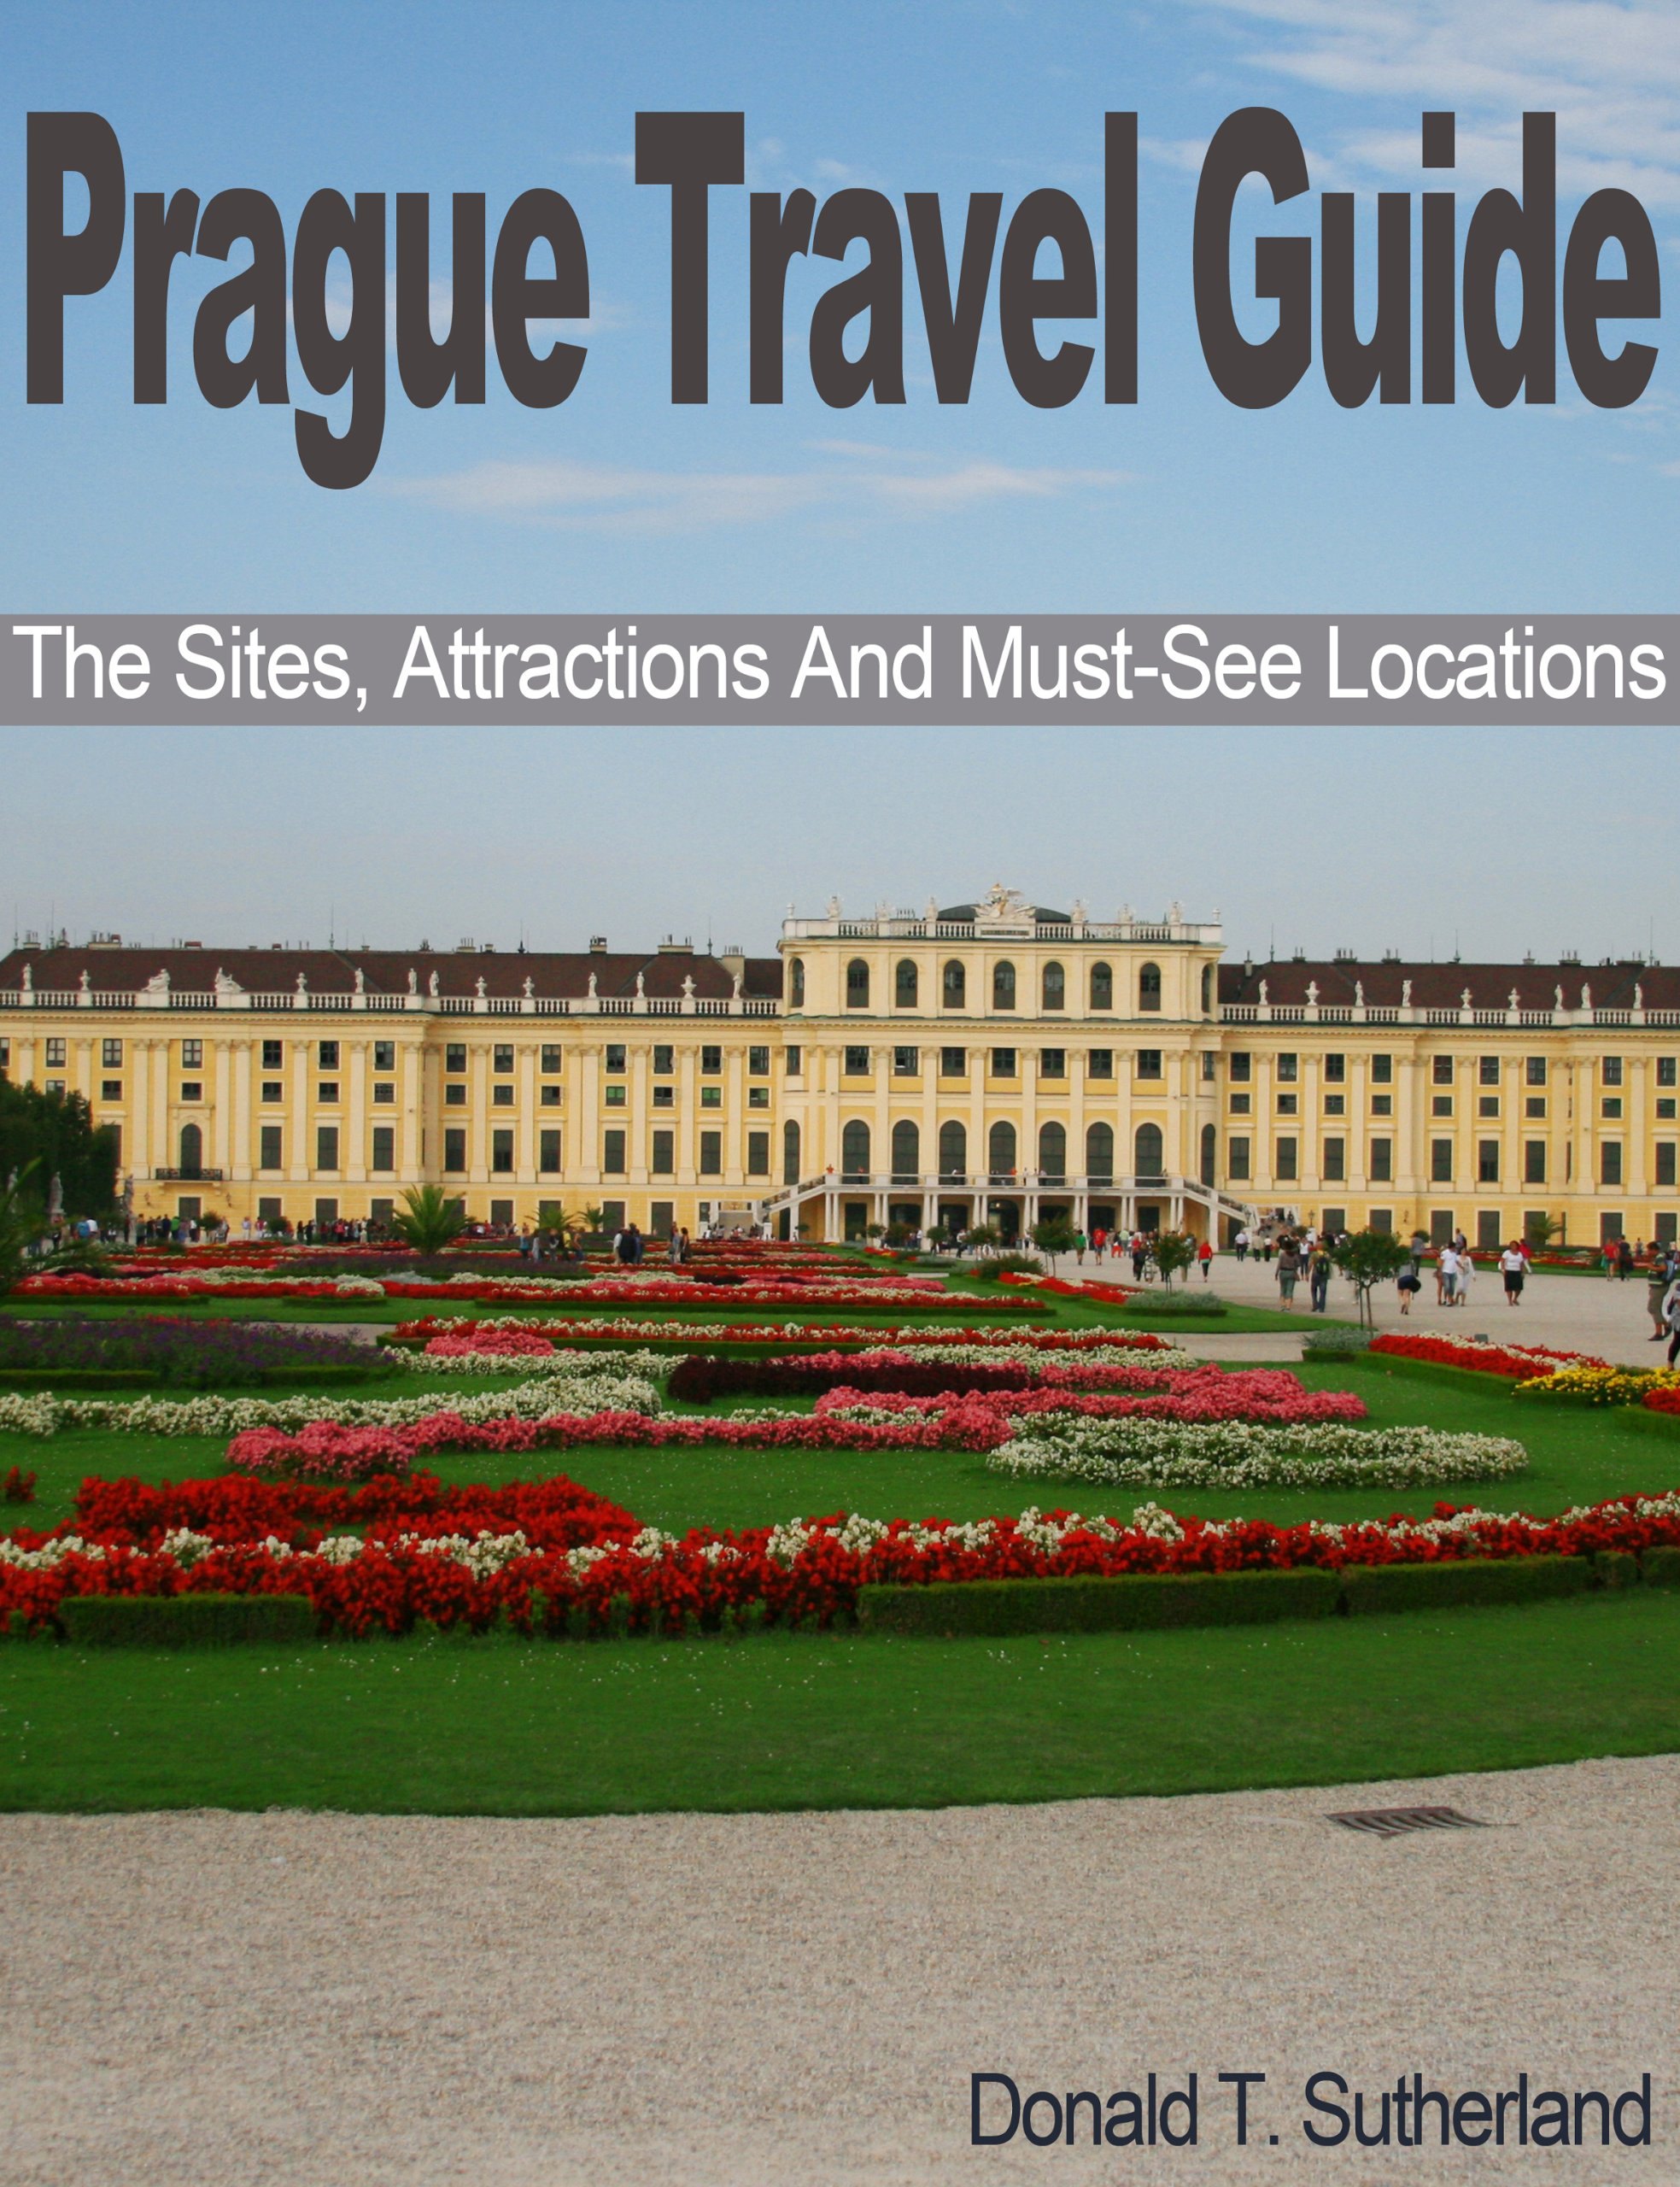 PRAGUE TRAVEL GUIDE: THE SITES, ATTRACTIONS AND MUST-SEE LOCATIONS